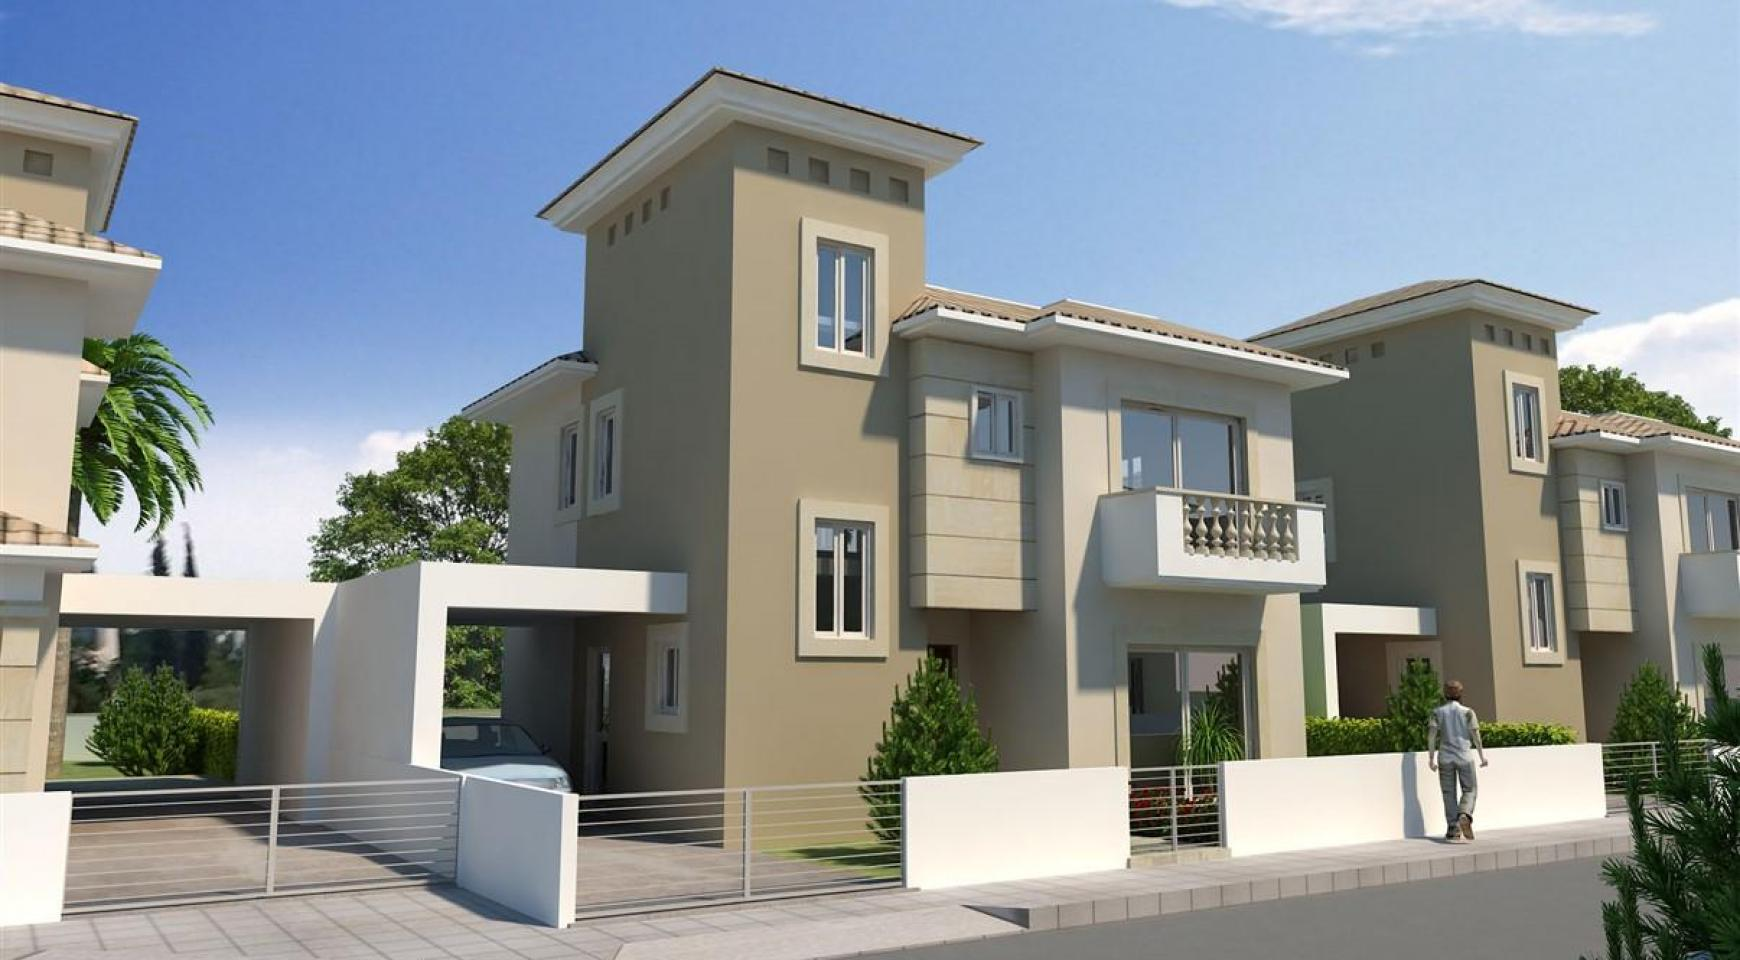 3 Bedroom Villa in New Project in Paphos - 14